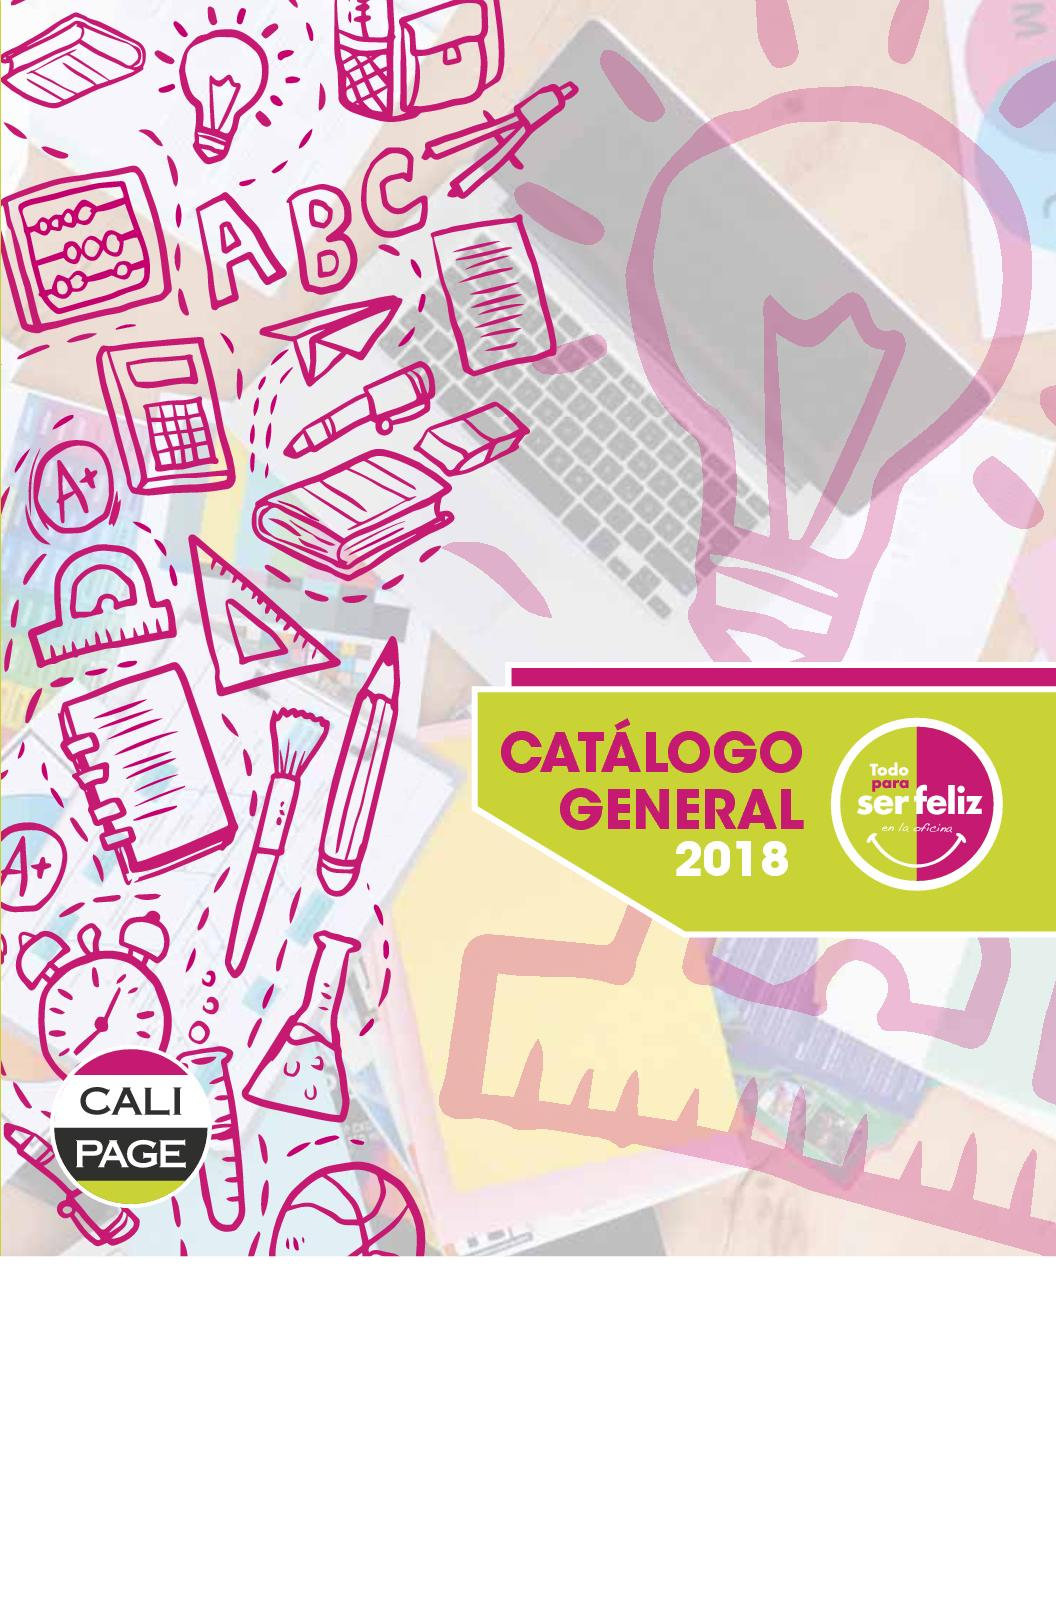 b29cc57cd78 Calaméo - Catalogo General 2018 Material Oficina